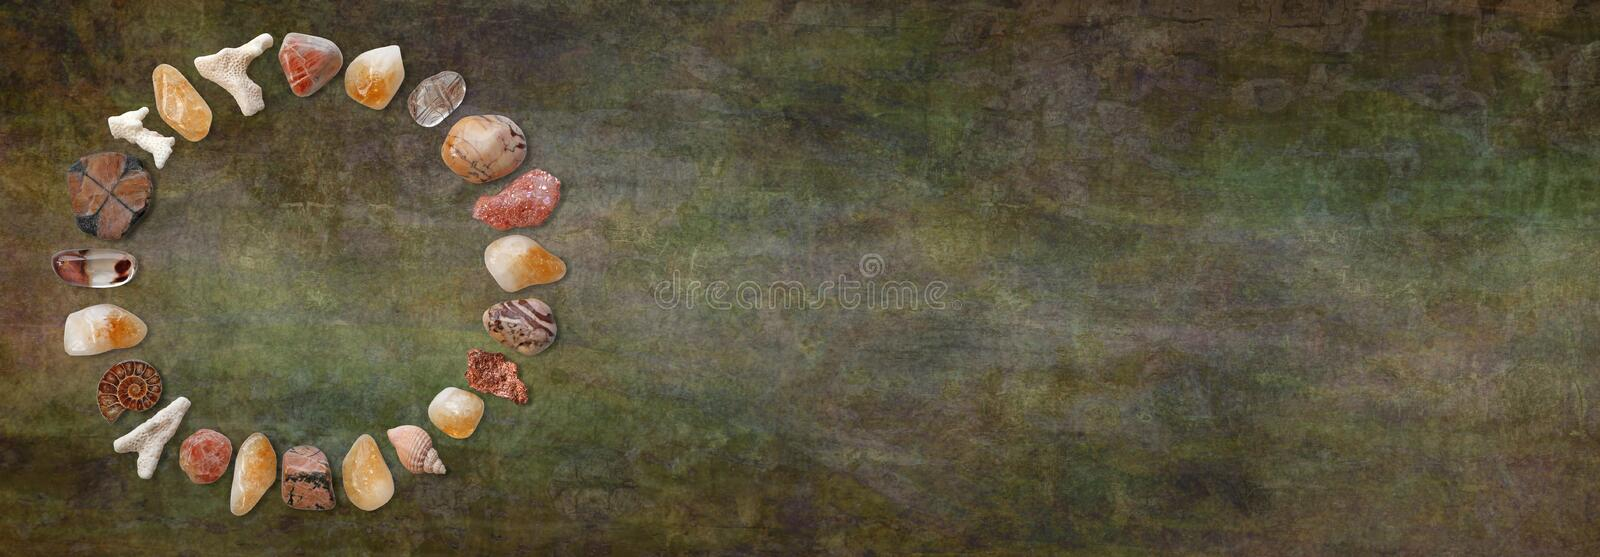 Rustic Crystal Circle Website Header. Tumbled healing crystals making a neat circular border against dark rustic stone background with copy space on right and royalty free stock photo